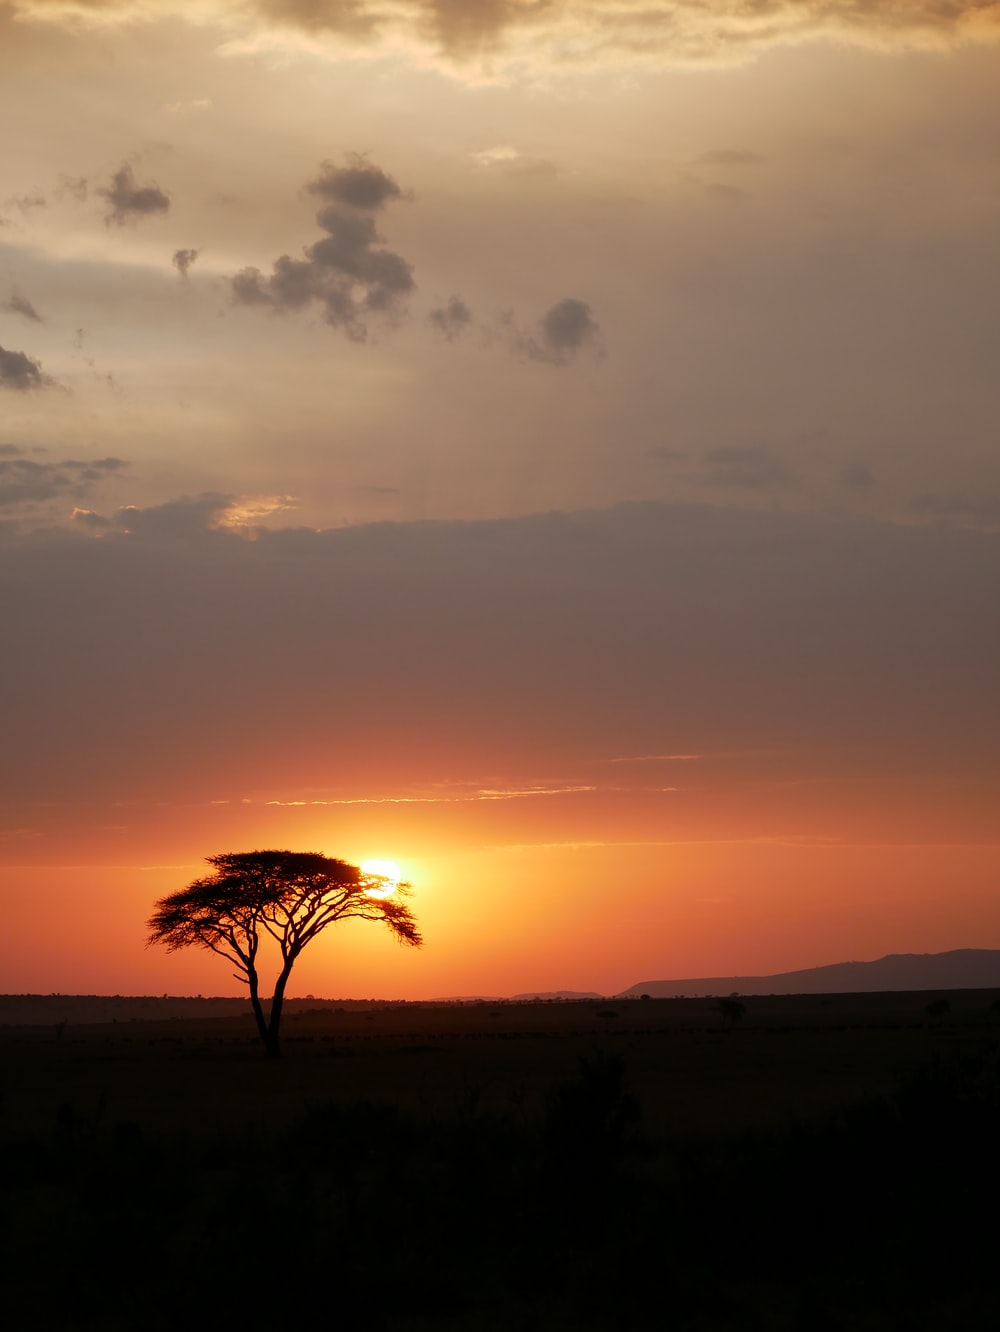 silhouette of tree on plain during golden hour